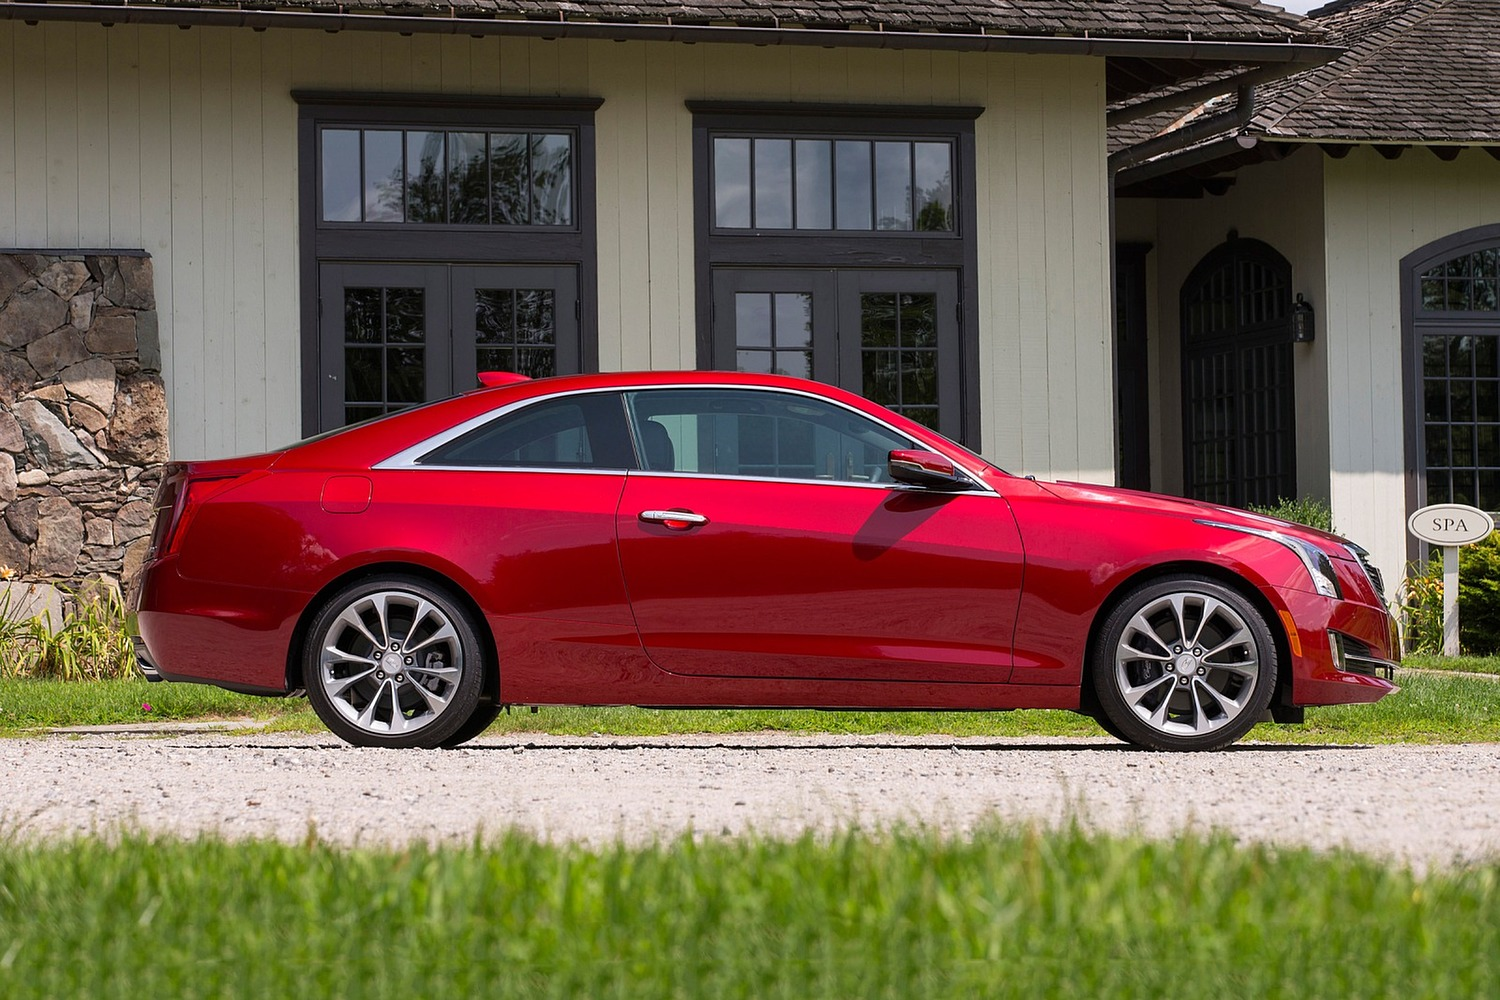 2018 Cadillac ATS Coupe Premium Performance Profile